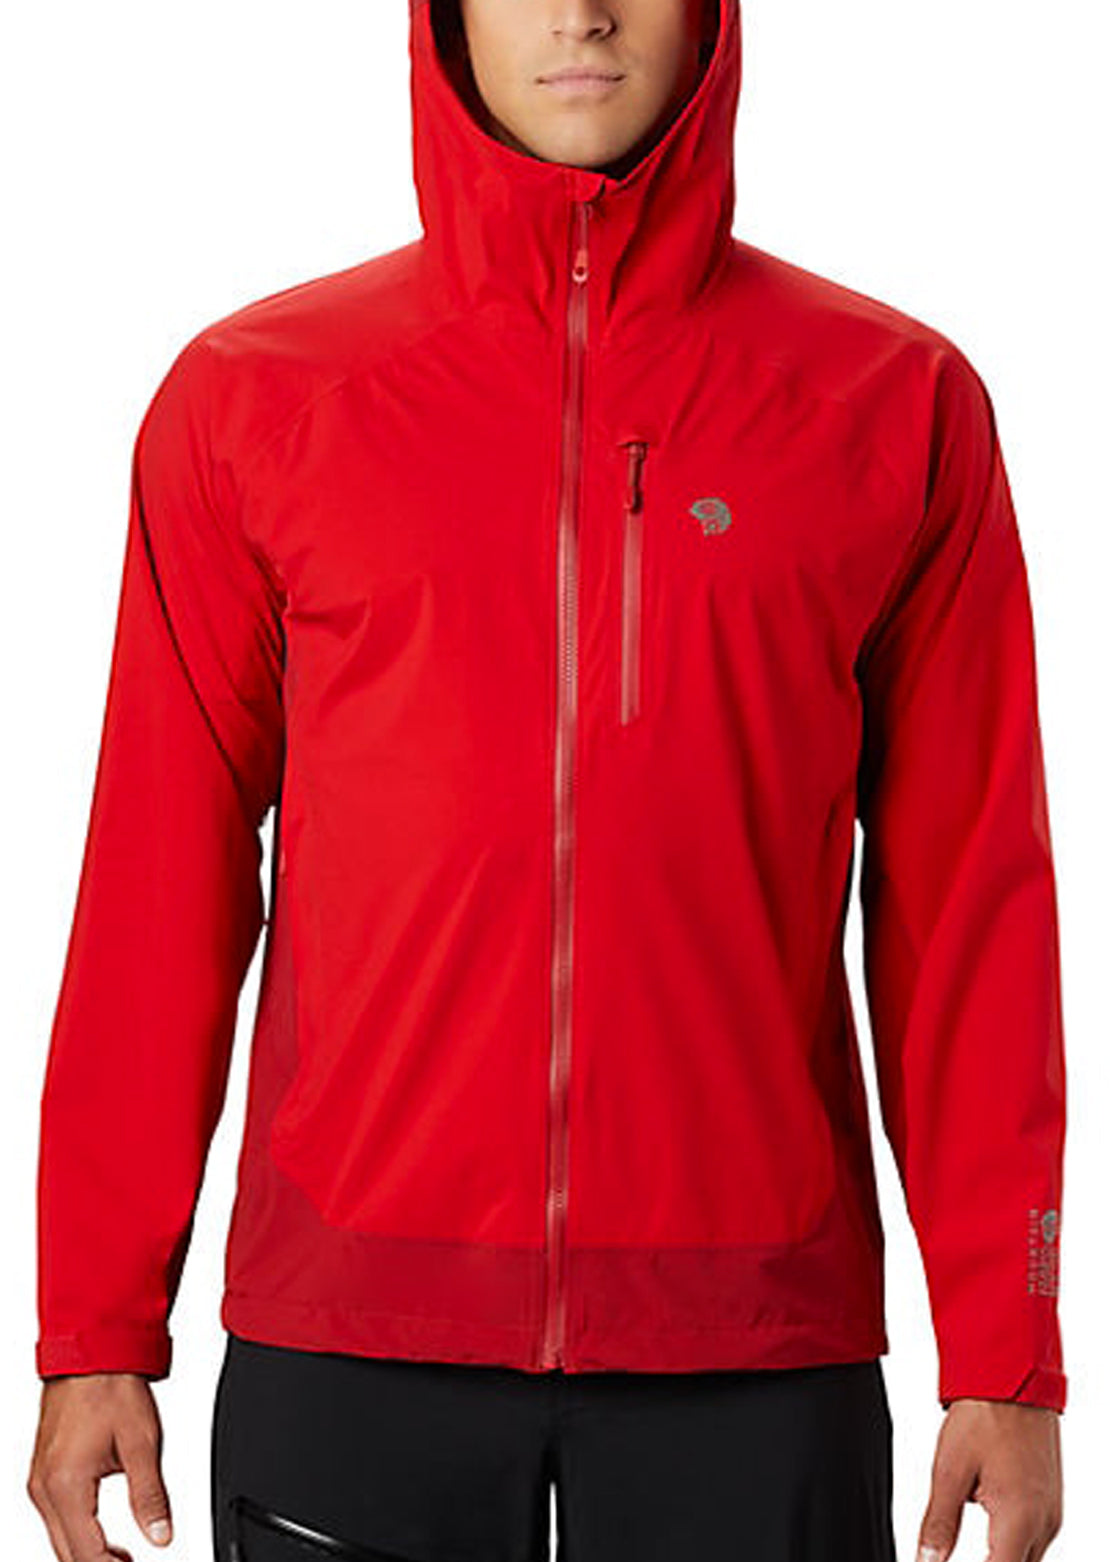 Mountain Harwear Men's Stretch Ozonic Jacket Racer